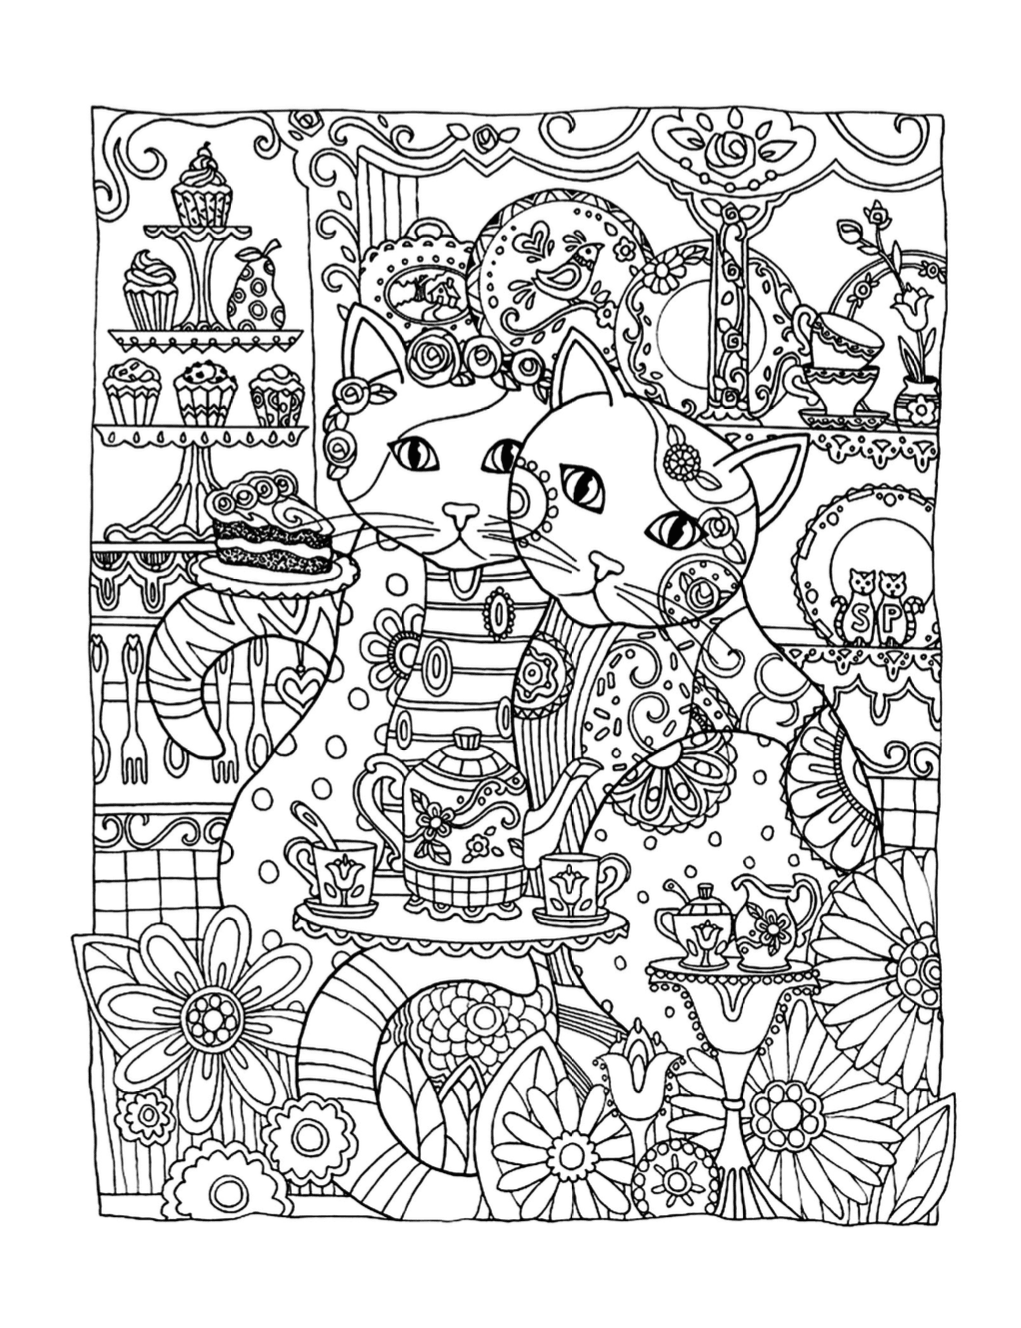 Two Cats Coloring Page | Free Download